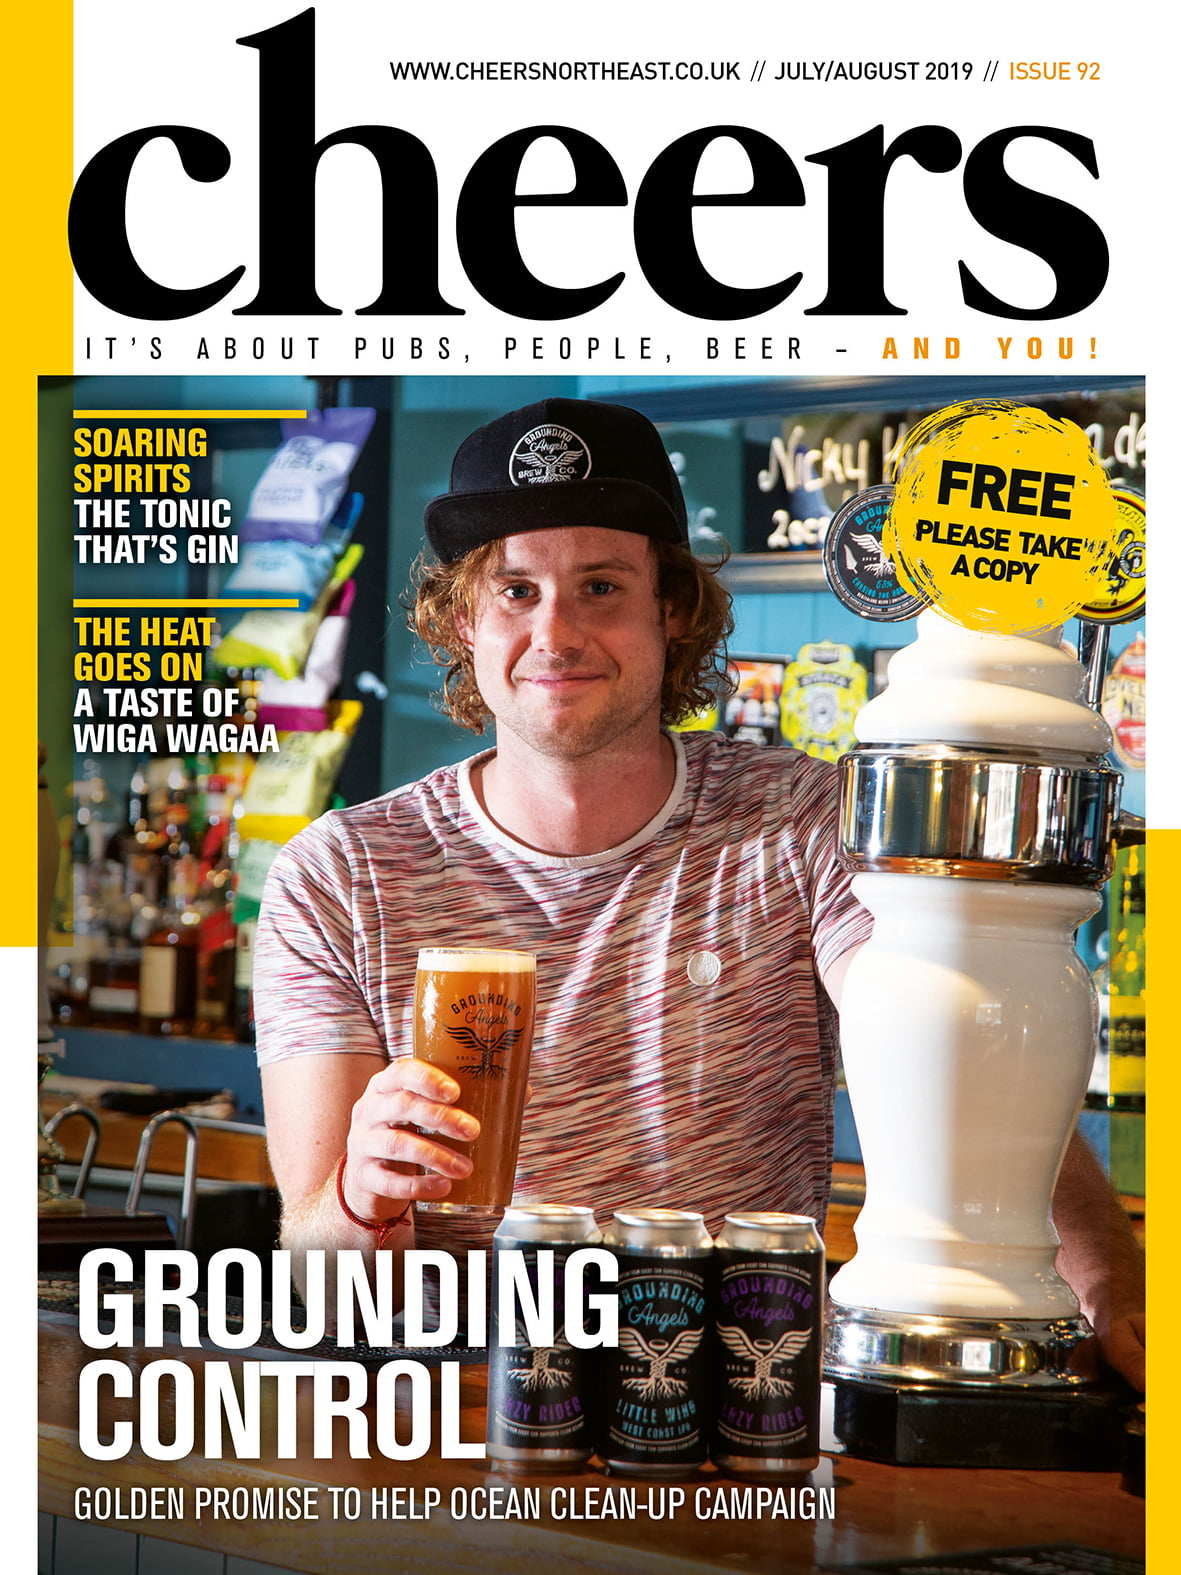 Cheers issue 92